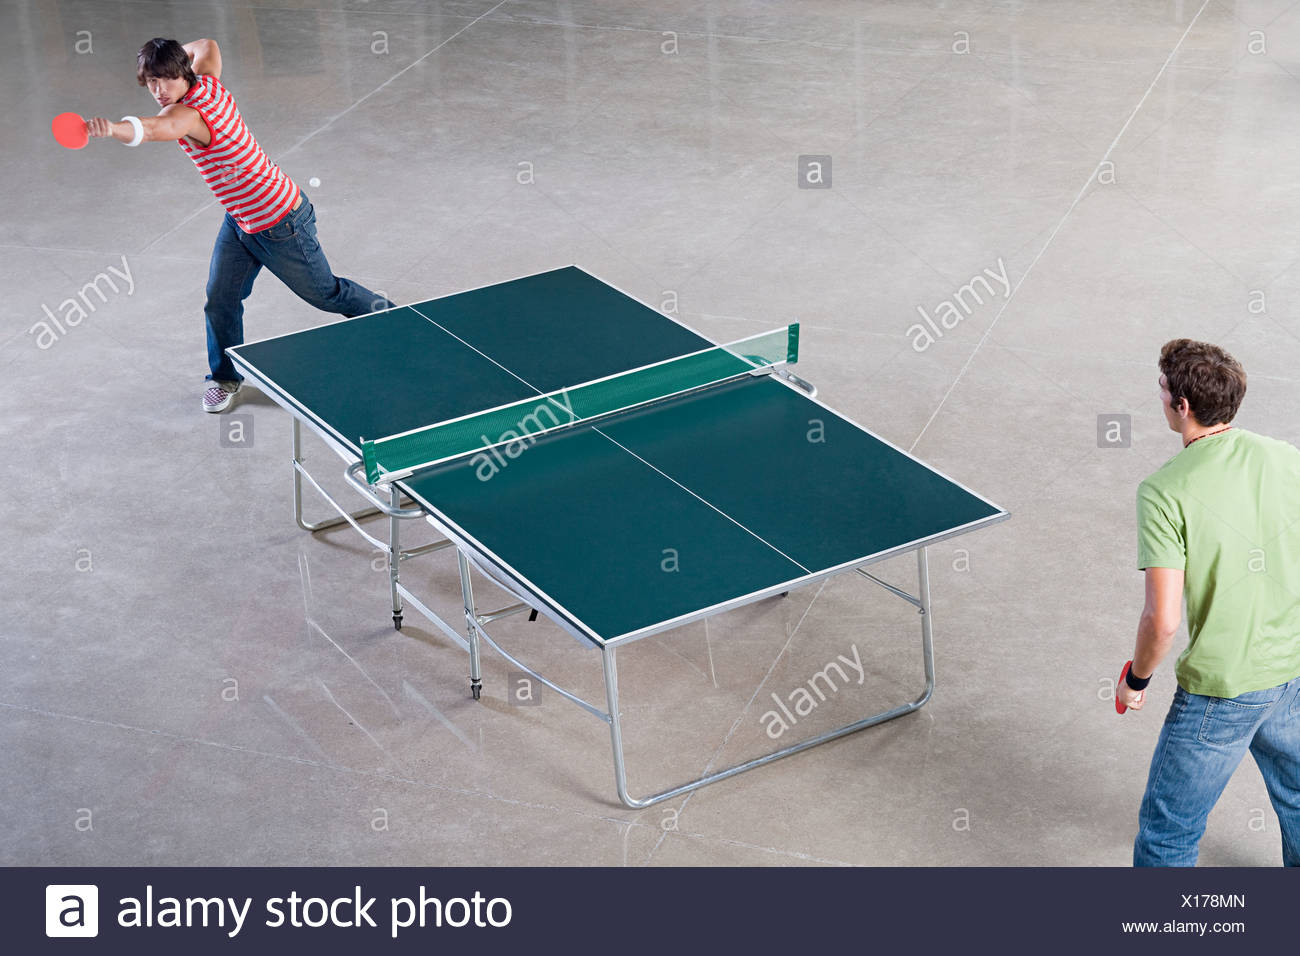 Two Men Playing Table Tennis Stock Photo 276141061 Alamy